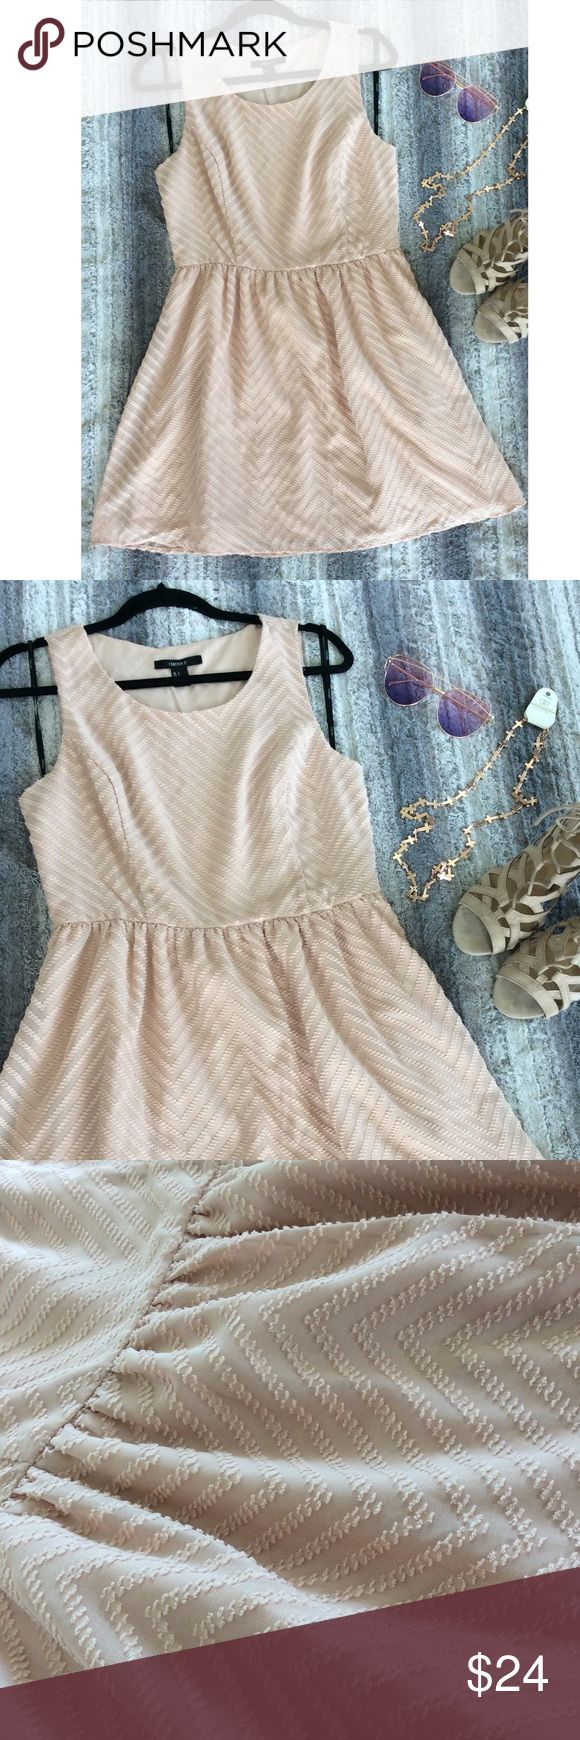 Forever 21 Blush Pink Zig Zag Dress Pre-loved sleeveless, blush pink dress with tonal zig zag design. Has pulling along back seams, as pictures show. 100% Polyester Forever 21 Dresses